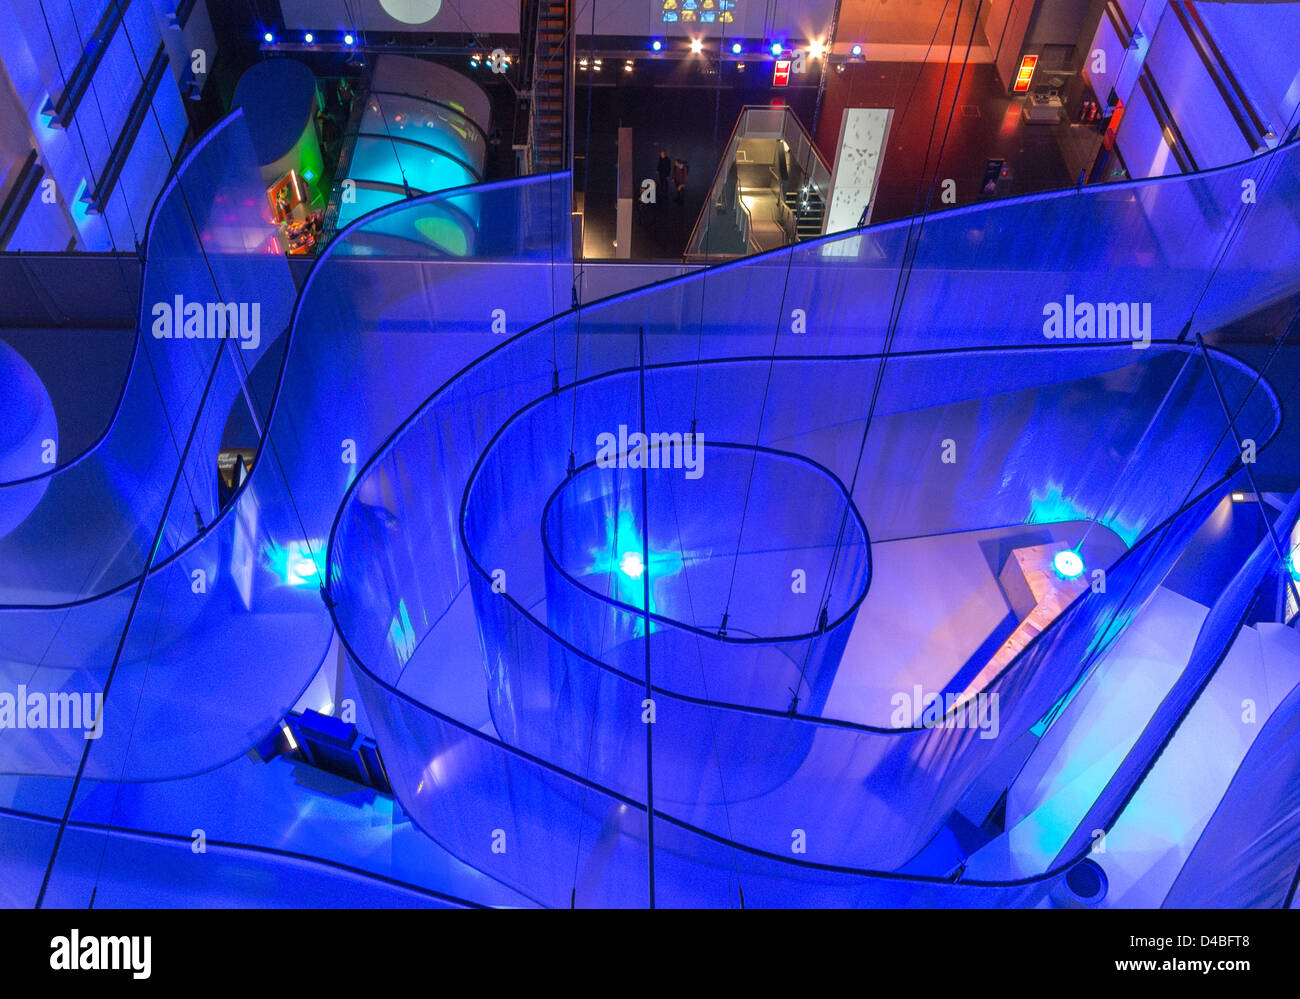 Science Museum in South Kensington, London, England - Stock Image